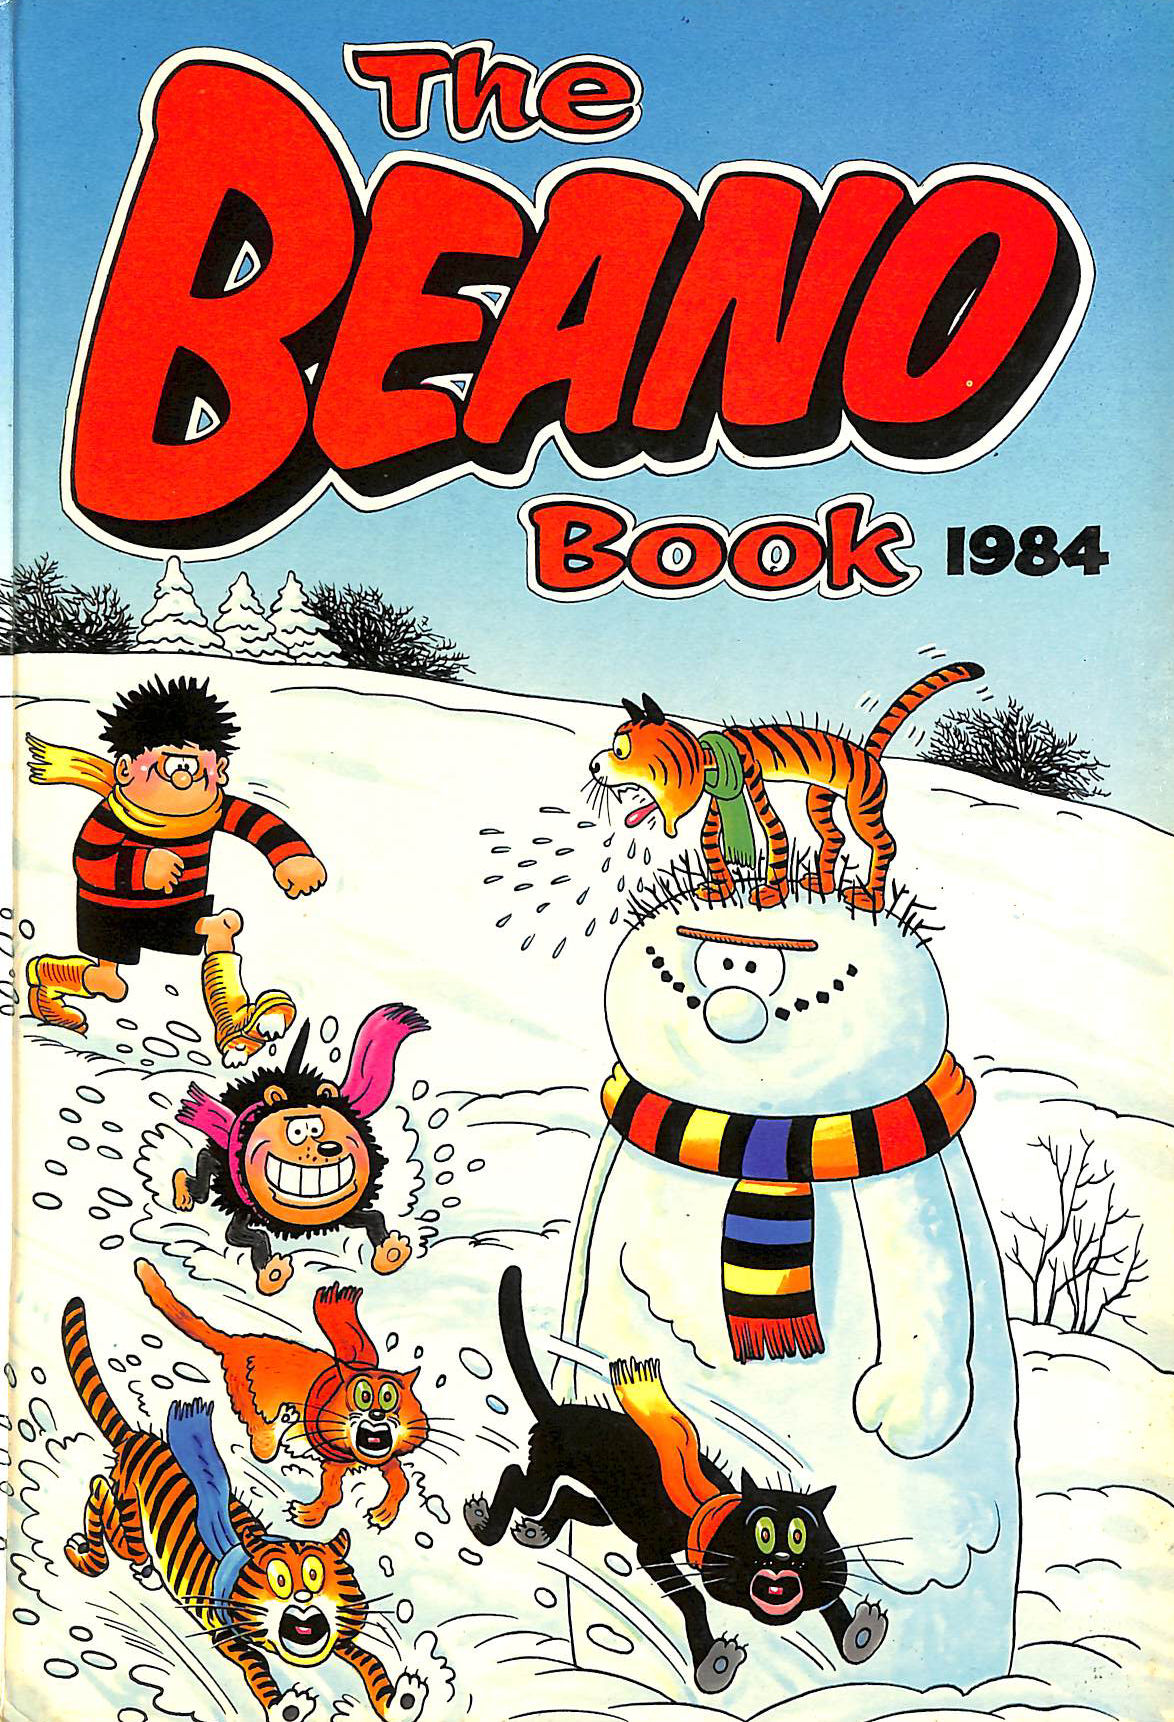 Image for THE BEANO BOOK 1984.